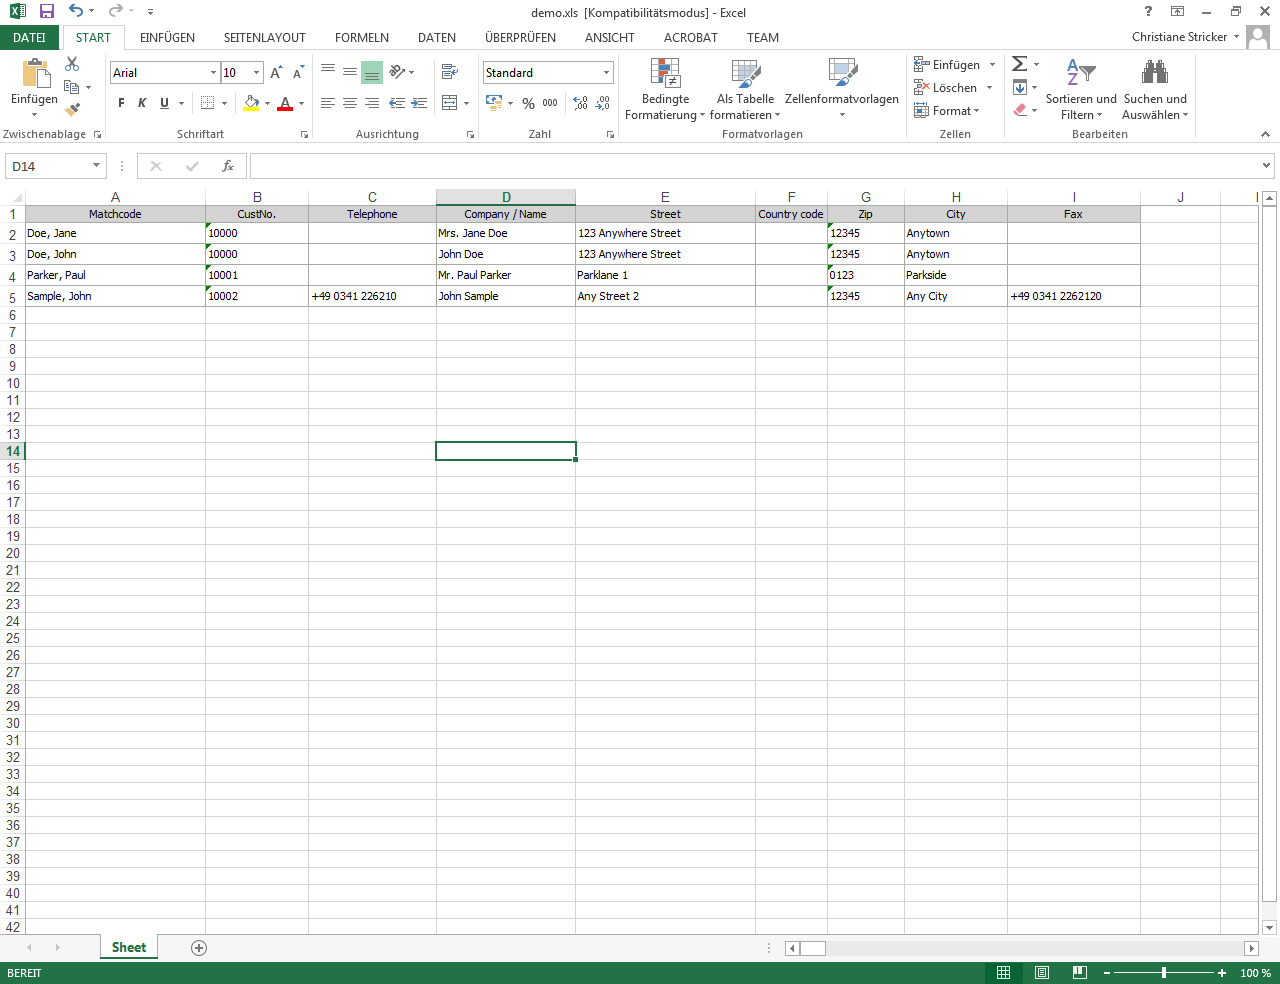 Contacts list view Excel export